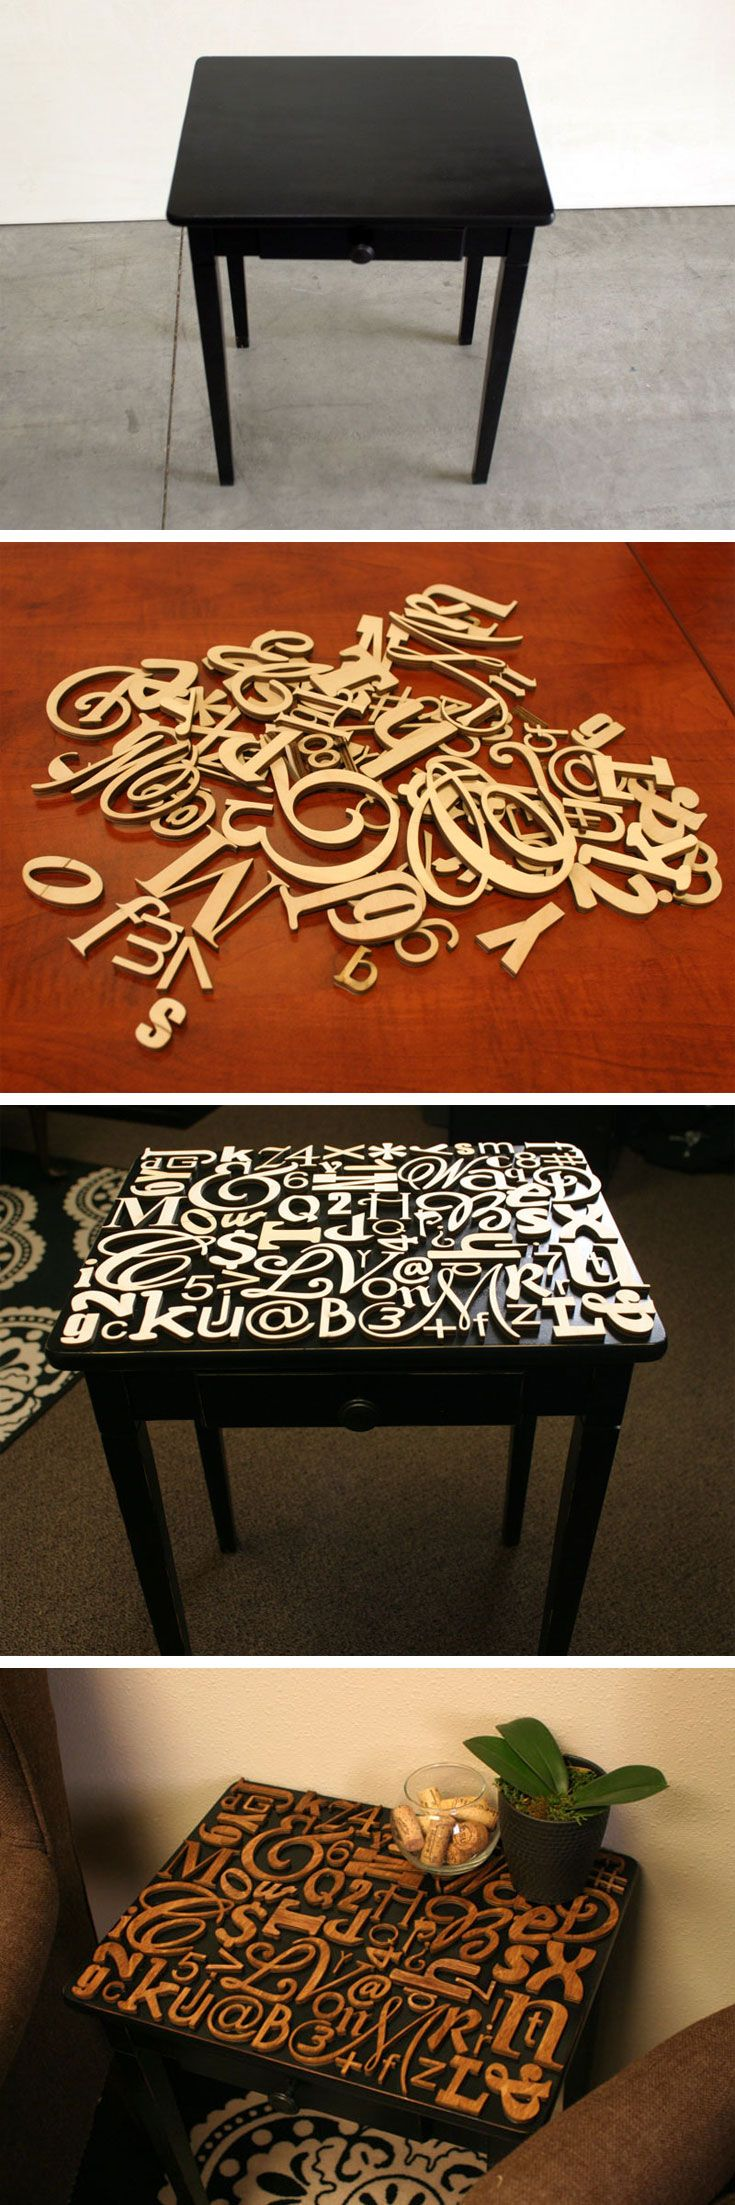 Craft table top ideas - My Inspiration Letter Table Top Idea Wooden Letters Numbers Adhered To A Table Top I Would Have A Piece Of Clear Glass Cut To Place Over The Top Of The